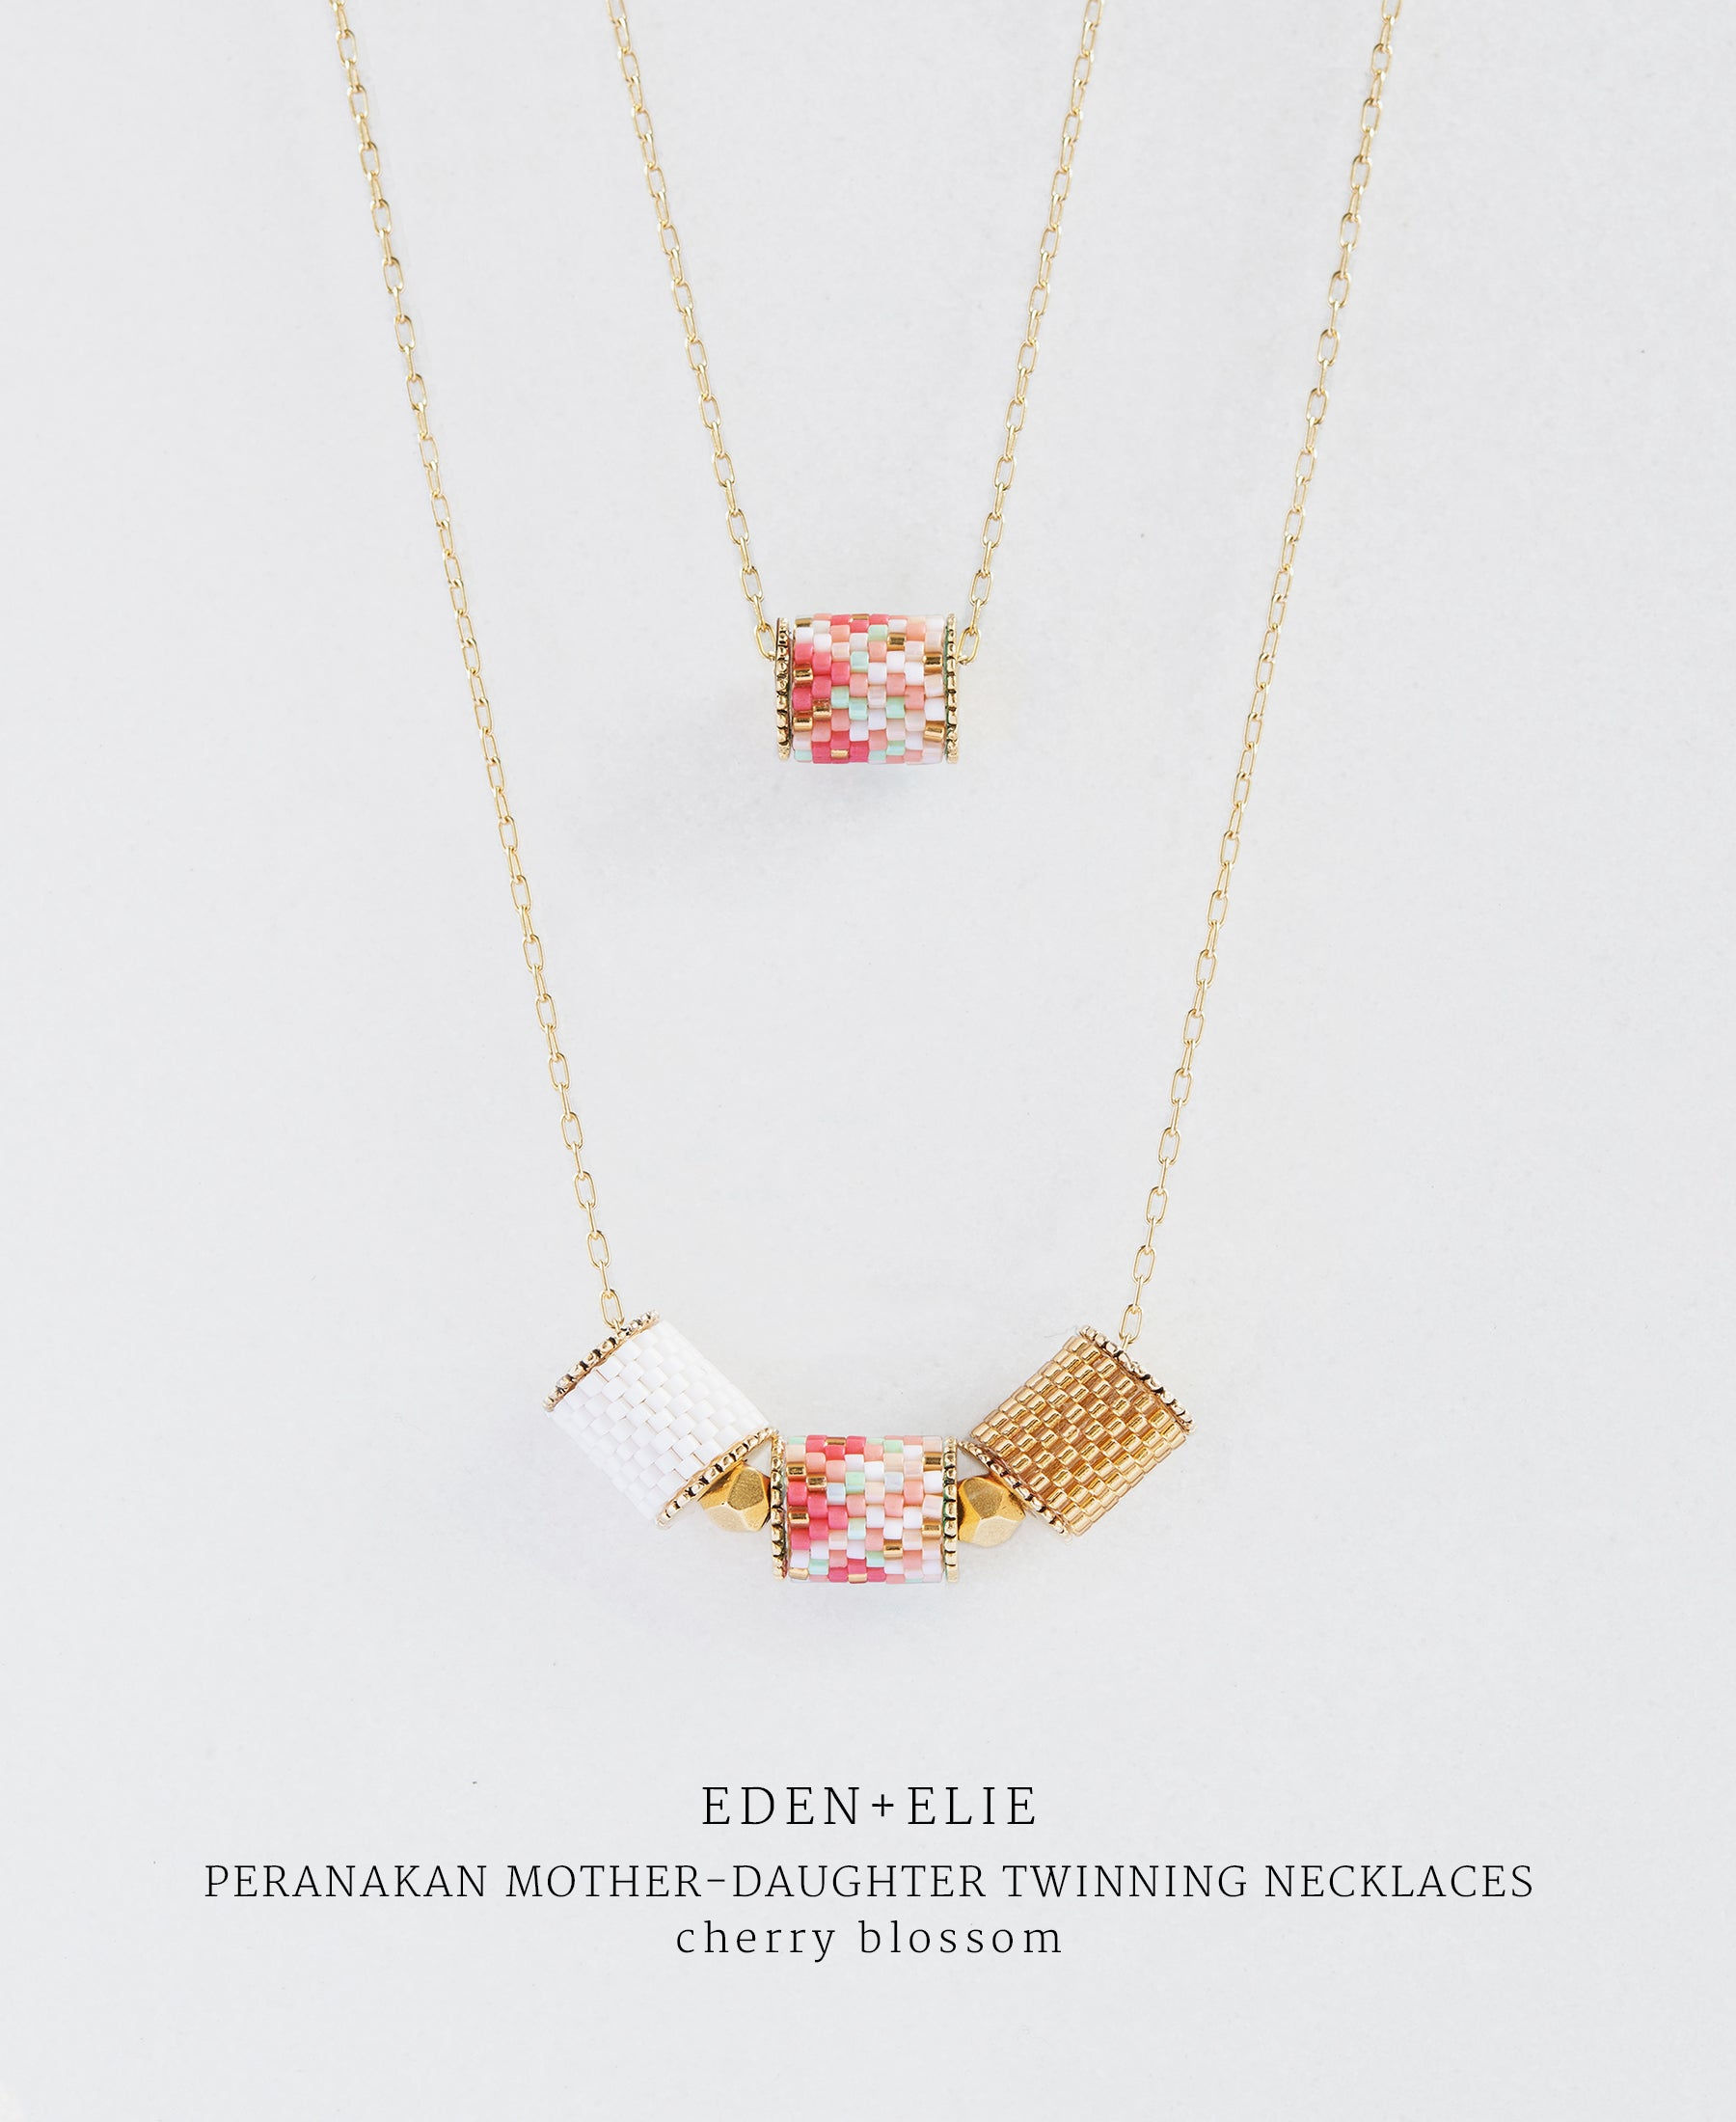 EDEN + ELIE Mother-Daughter twinning necklaces set - cherry blossom